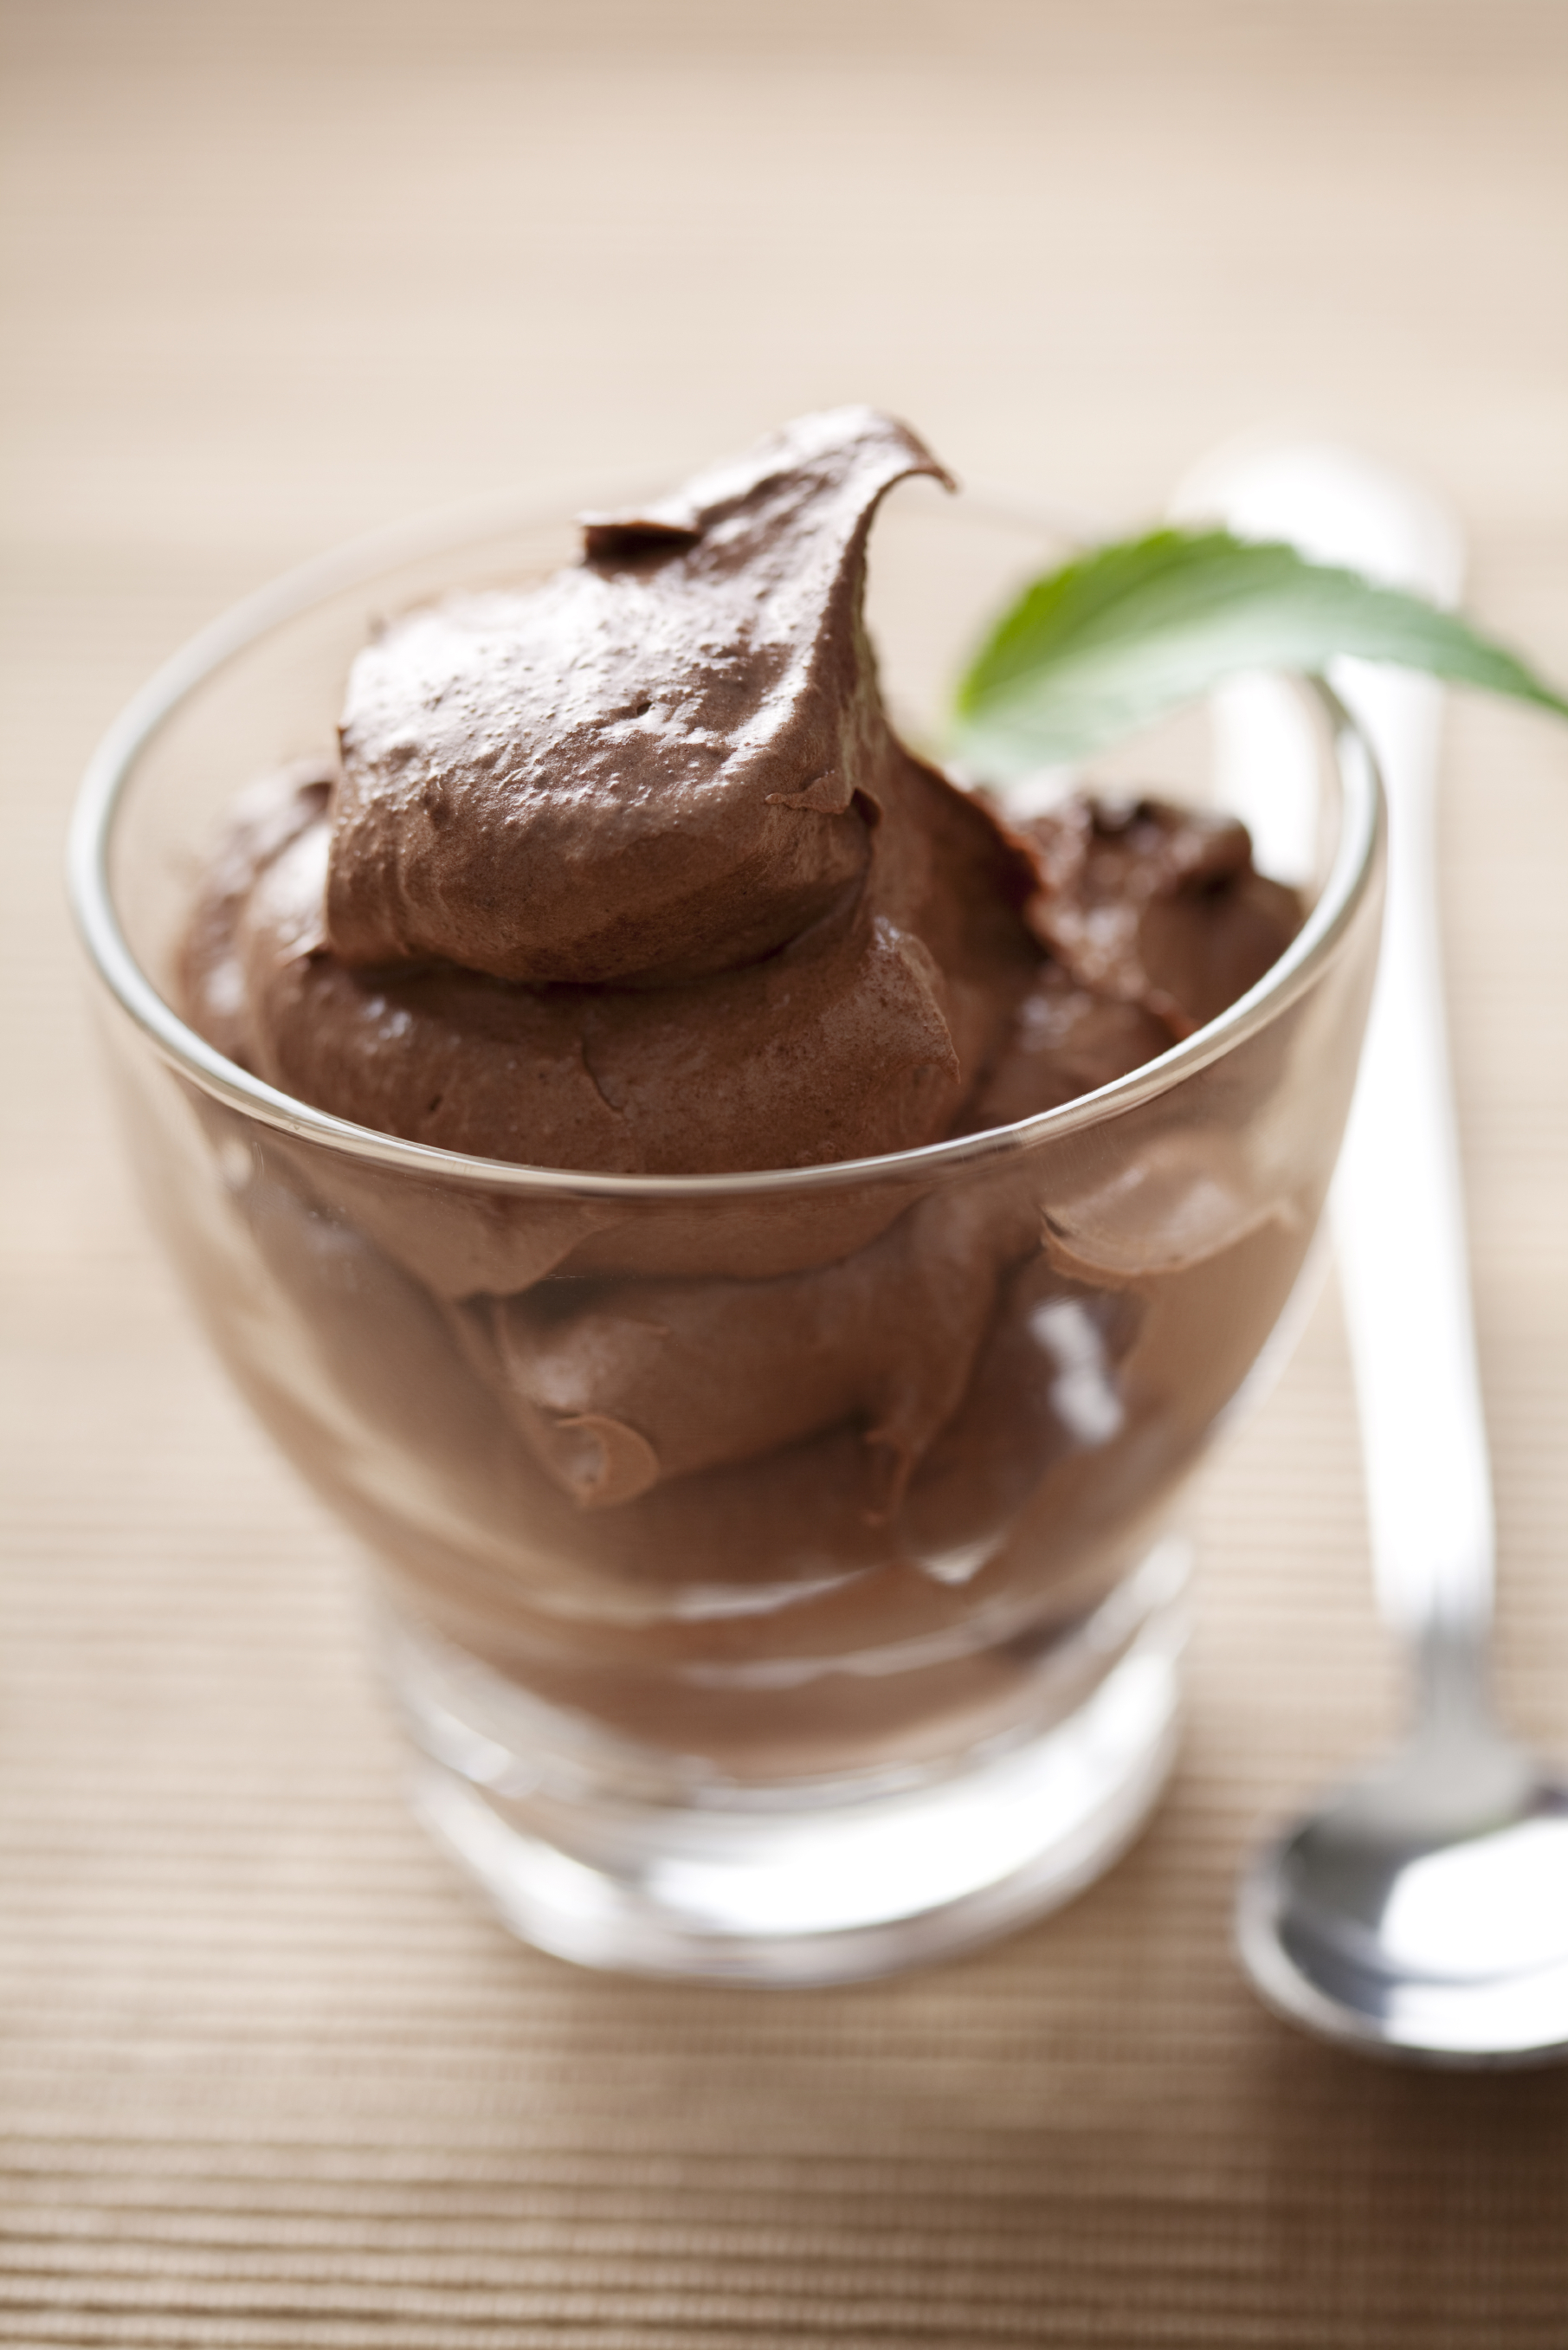 Craving chocolate? This creamy mocha mousse tastes decadent, but it is ...